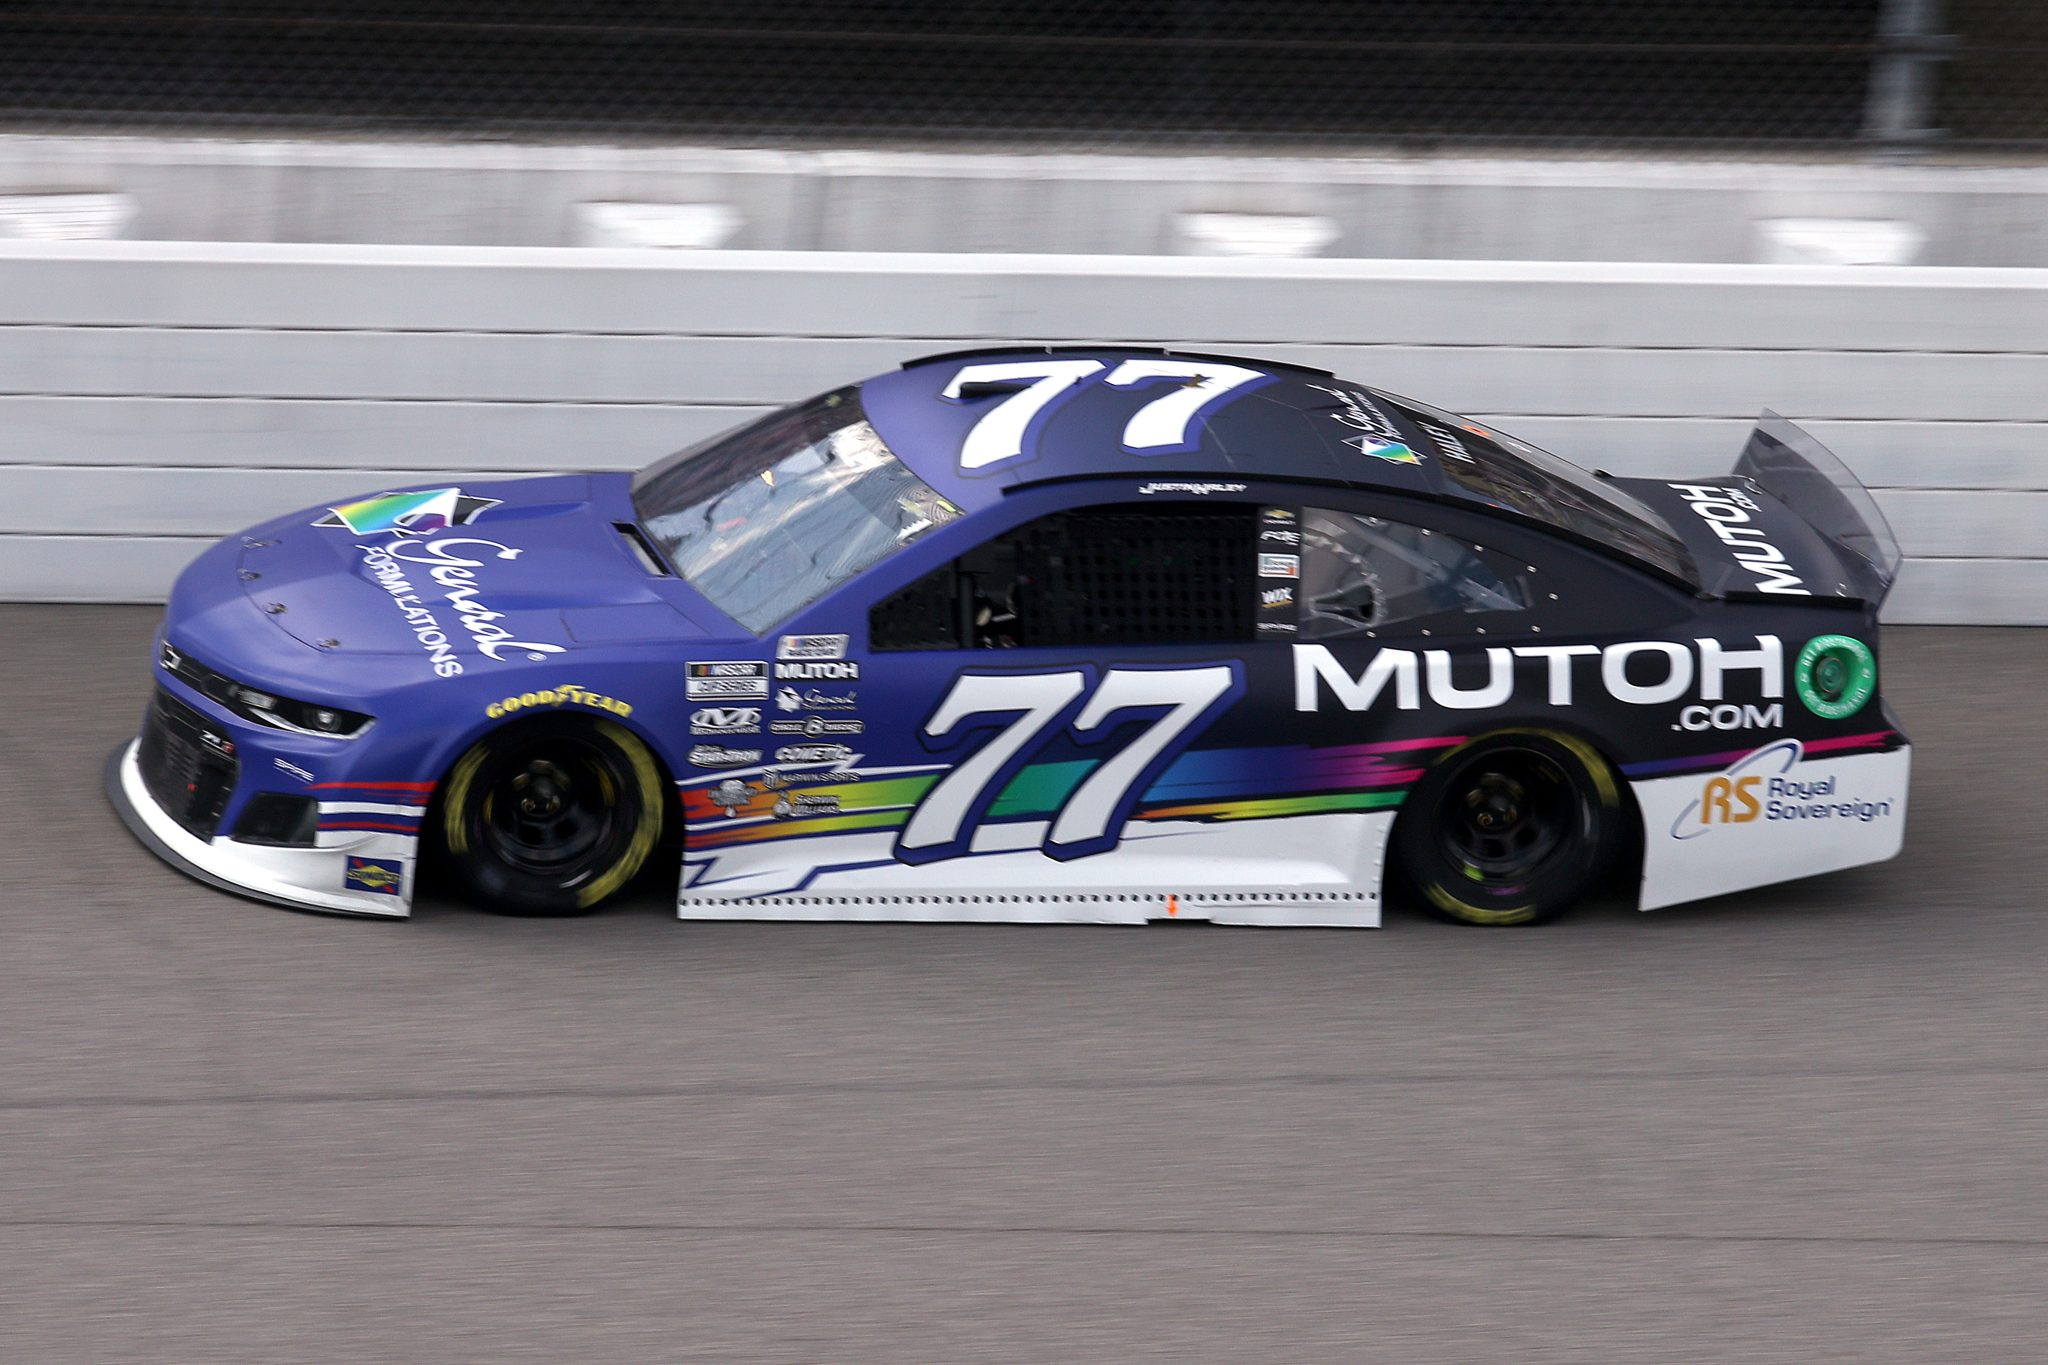 BROOKLYN, MICHIGAN - AUGUST 22: Justin Haley, driver of the #77 General Formulations/Mutoh Chevrolet, drives during the NASCAR Cup Series FireKeepers Casino 400 at Michigan International Speedway on August 22, 2021 in Brooklyn, Michigan. (Photo by Sean Gardner/Getty Images) | Getty Images